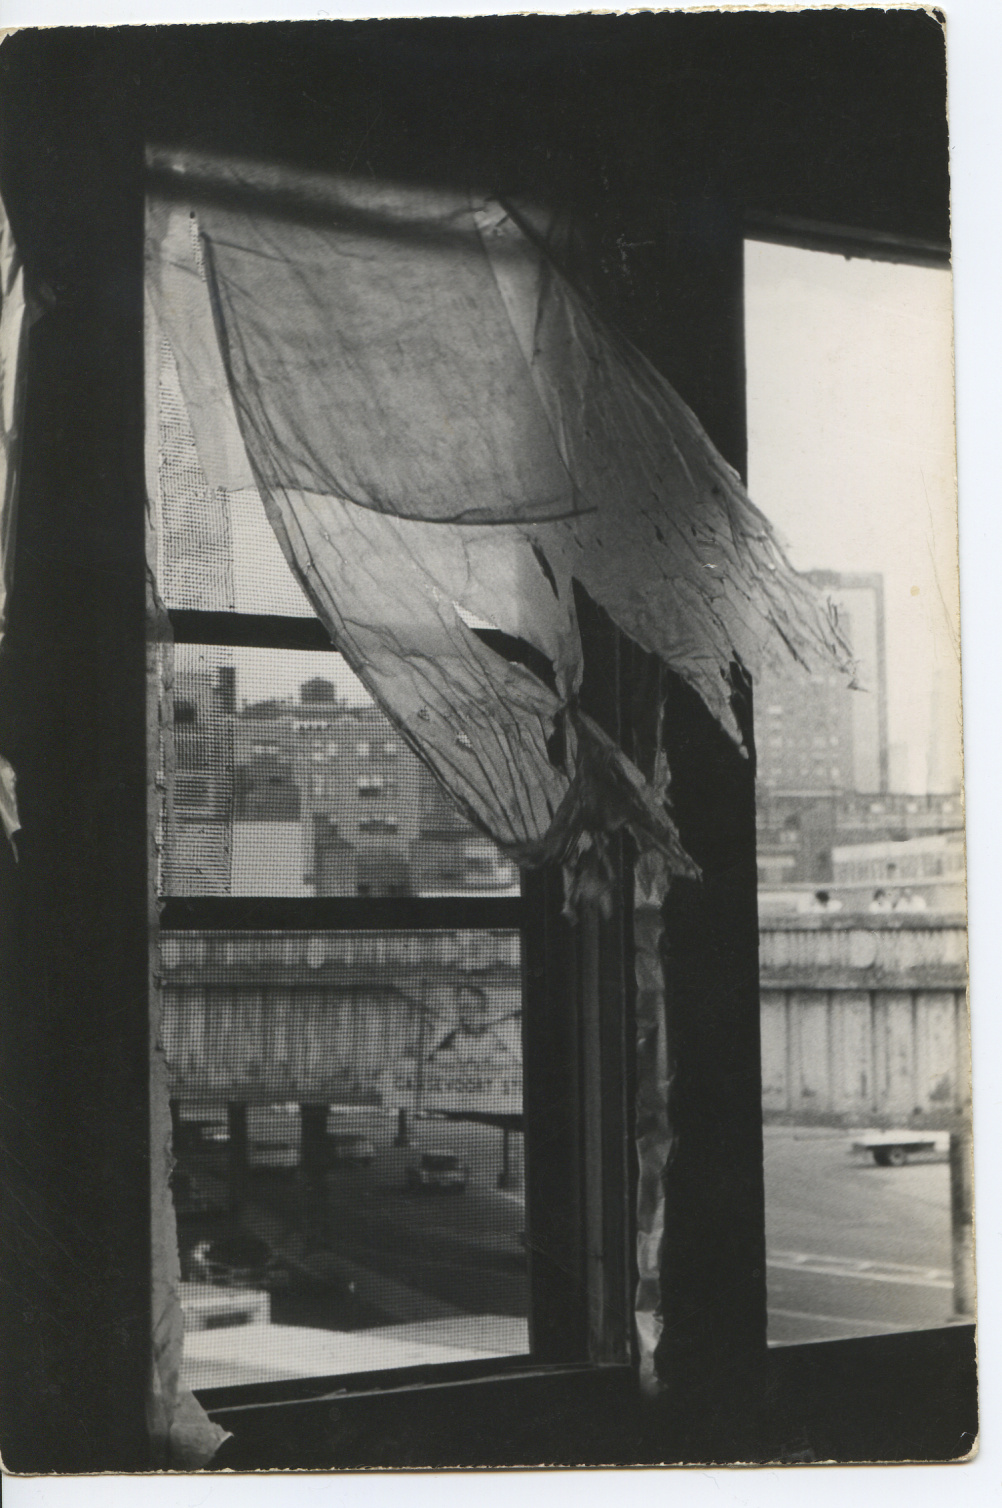 Alvin Baltrop, The Piers (open window) 1975-86